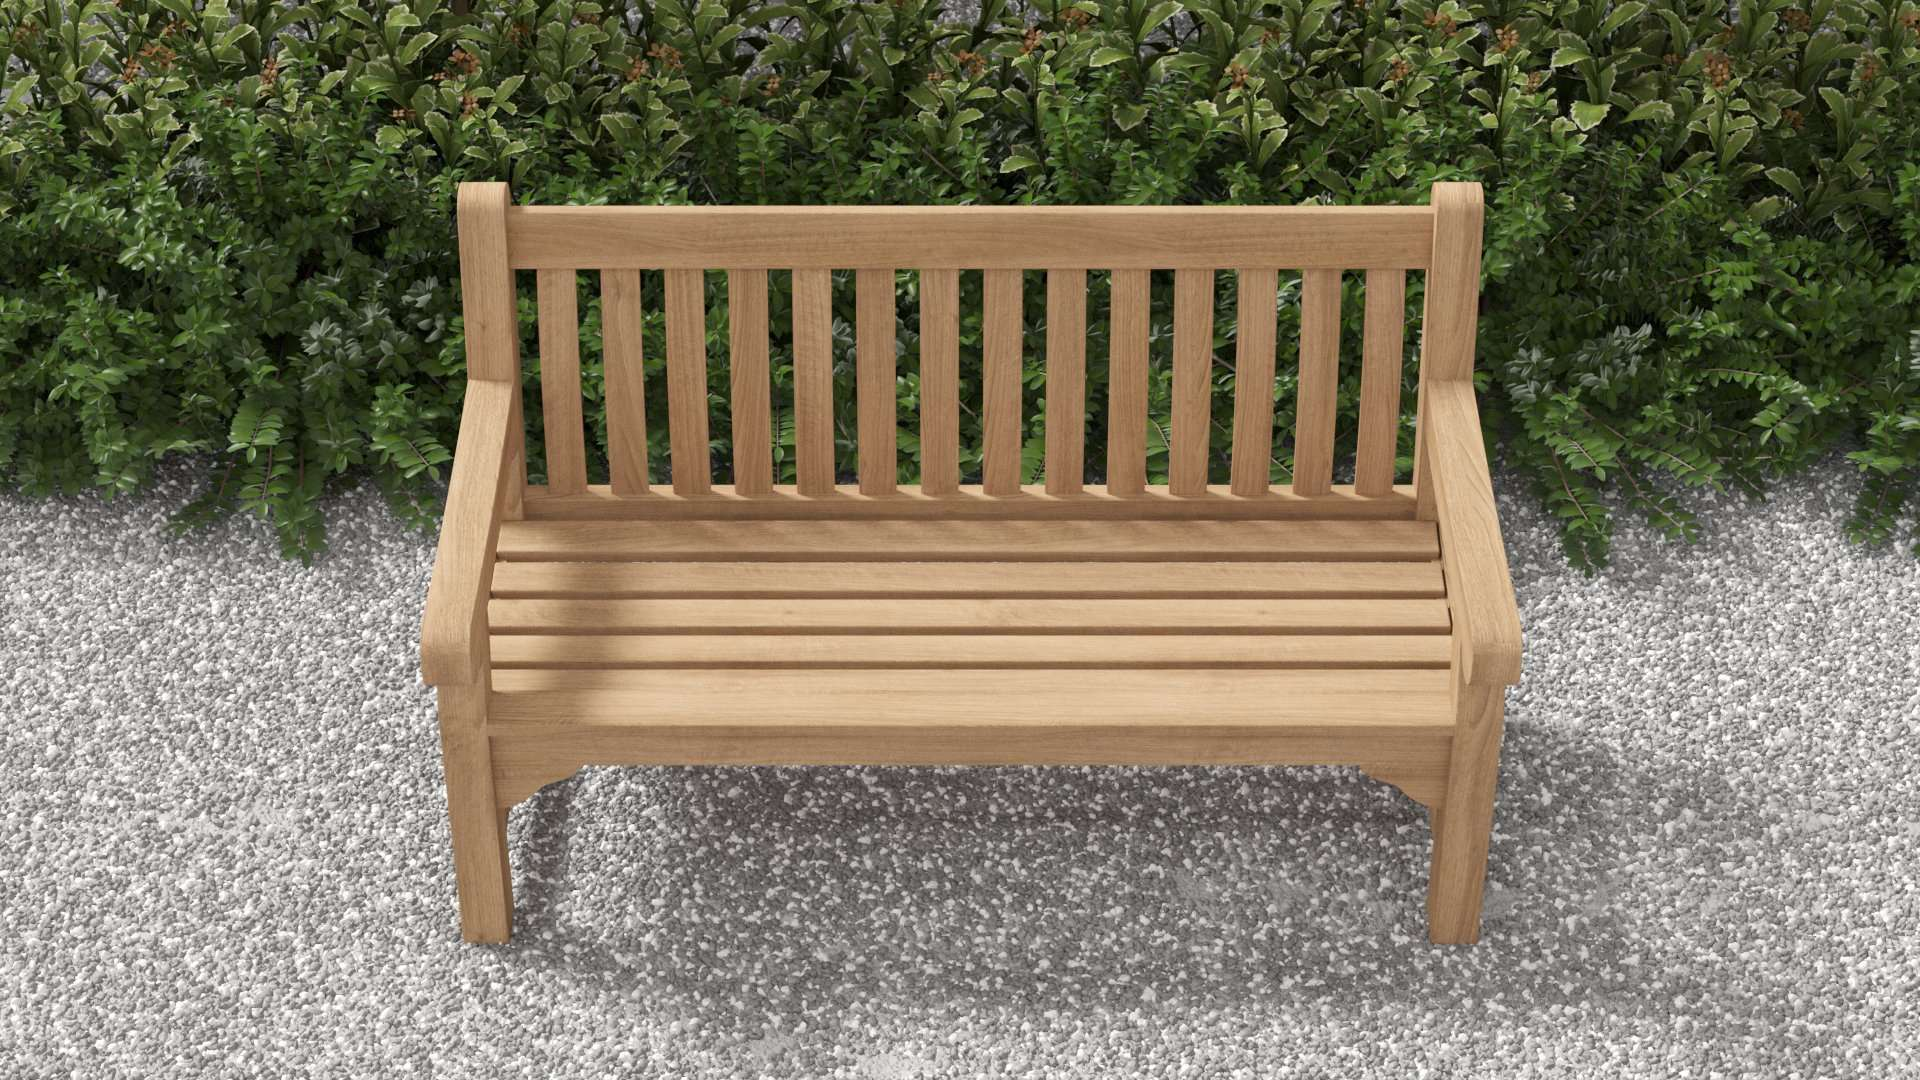 Salisbury Teak Bench 3 Seater  - Chic Teak® | Luxury Teak Furniture